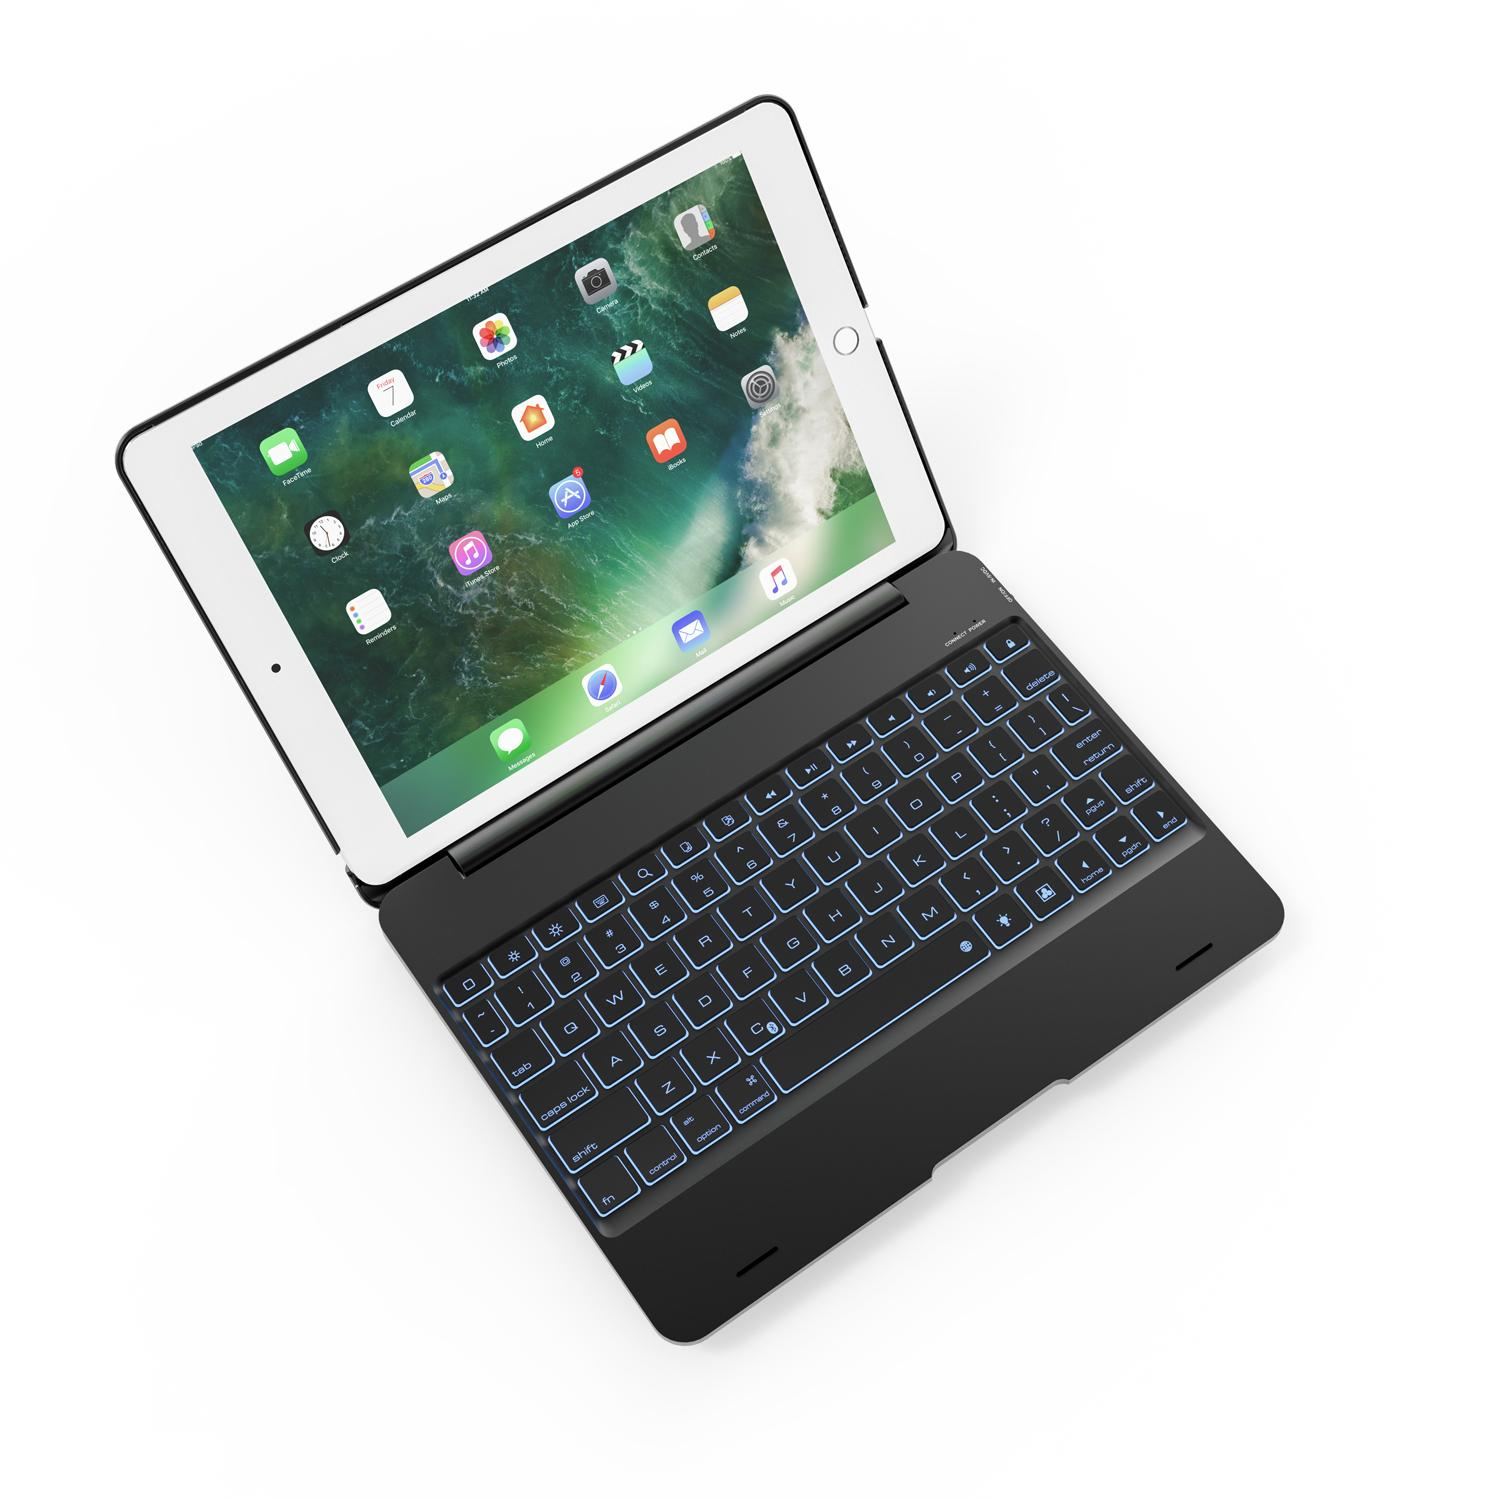 Landas 7 Colors Backlit Bluetooth Keyboard Case For New iPad 9.7 2017 A1822 A1823 Smart Case Keyboard For iPad 9.7 2017